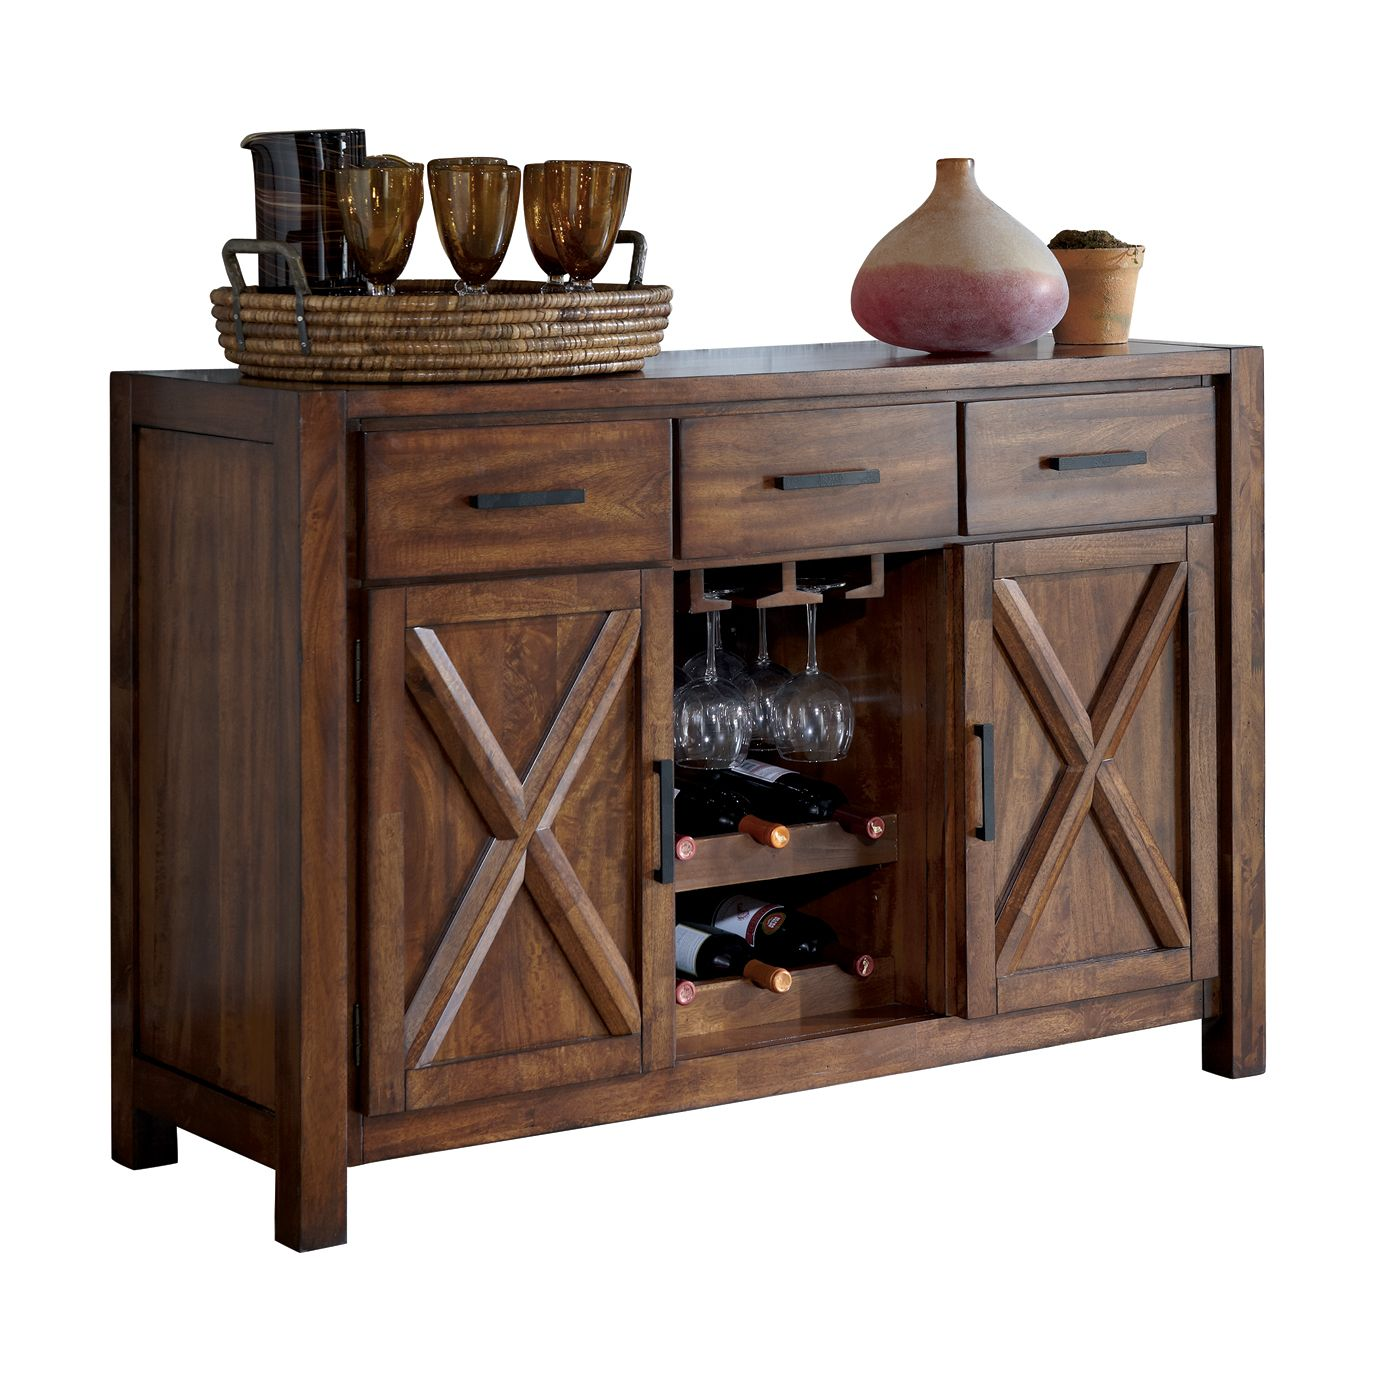 Casual Dining Room Buffet Decorating Ideas: Signature Design By Ashley D644-60 Waurika Server